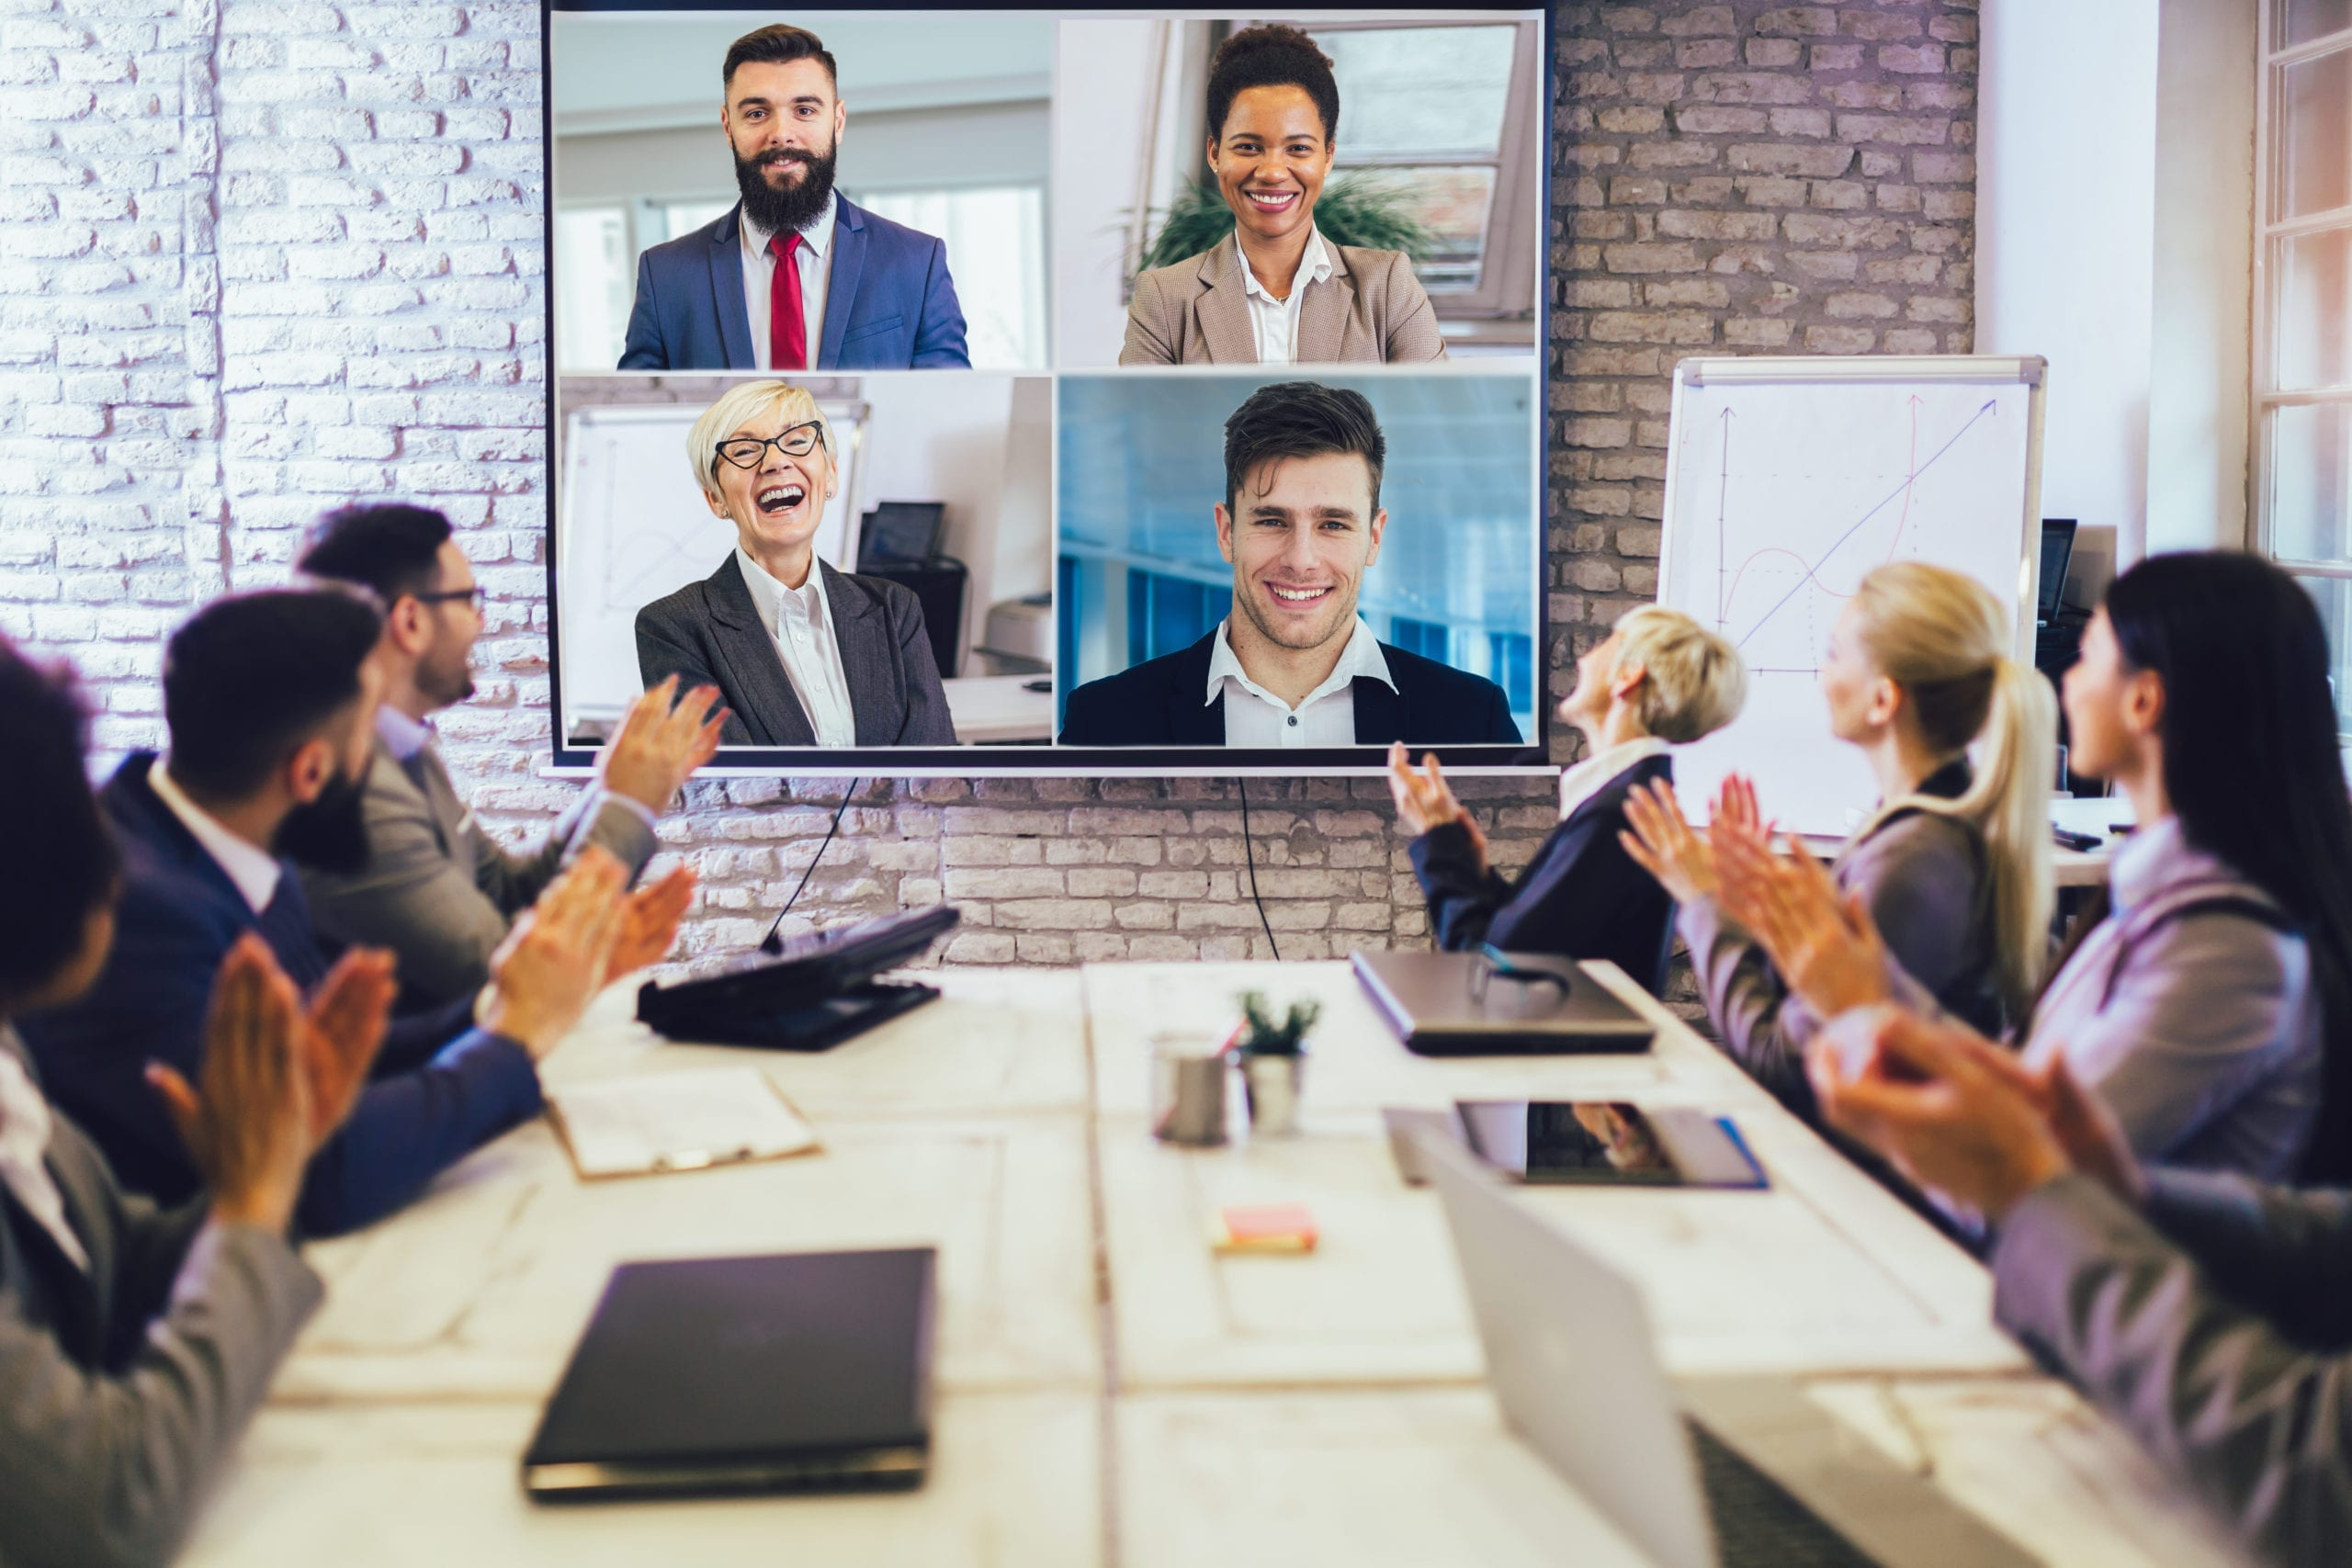 Business people looking at an audio & visual system during a video conference in the conference room